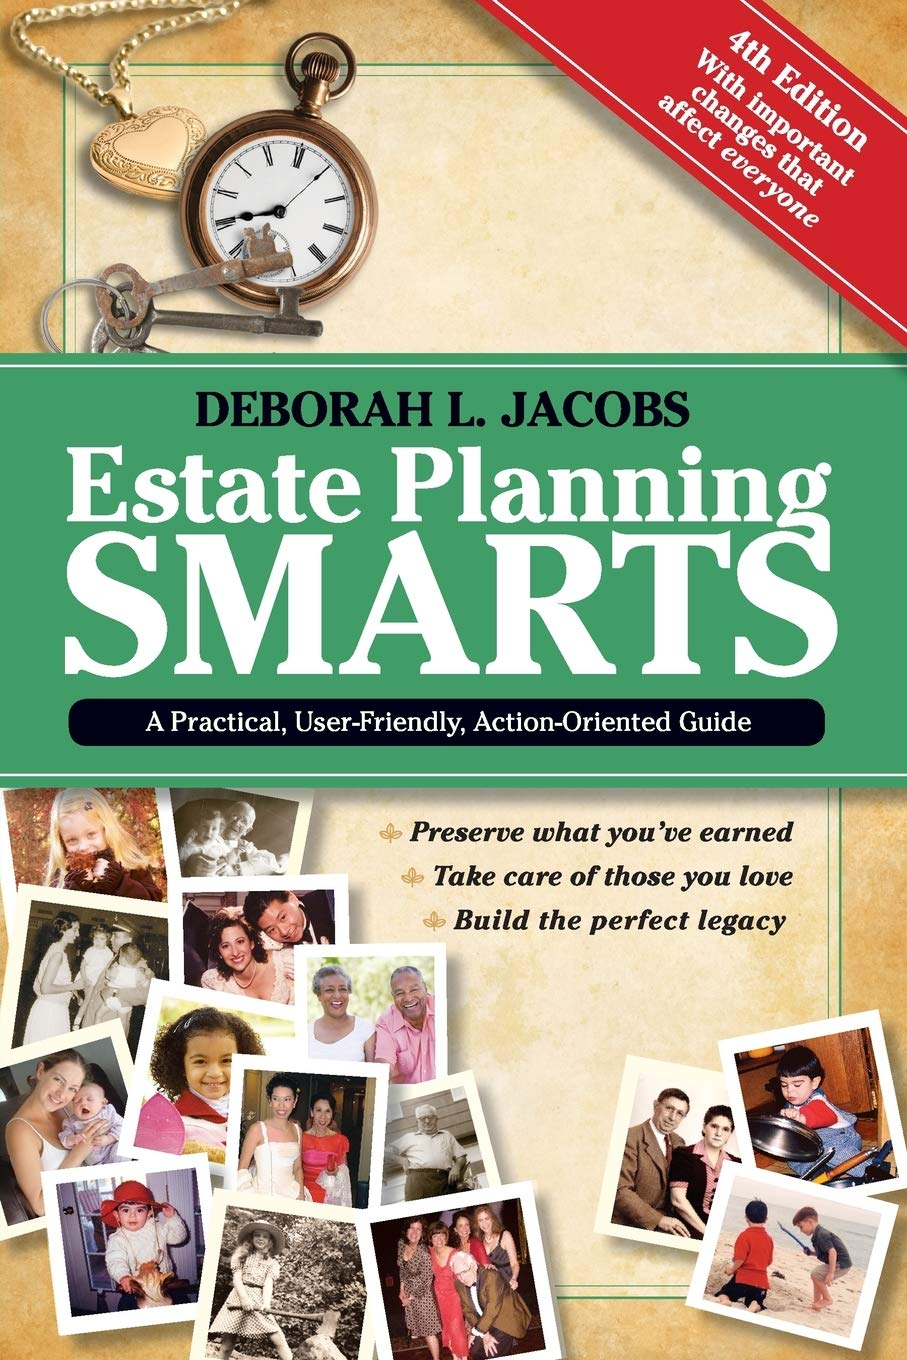 Image OfEstate Planning Smarts: A Practical, User-Friendly, Action-Oriented Guide, 4th Edition